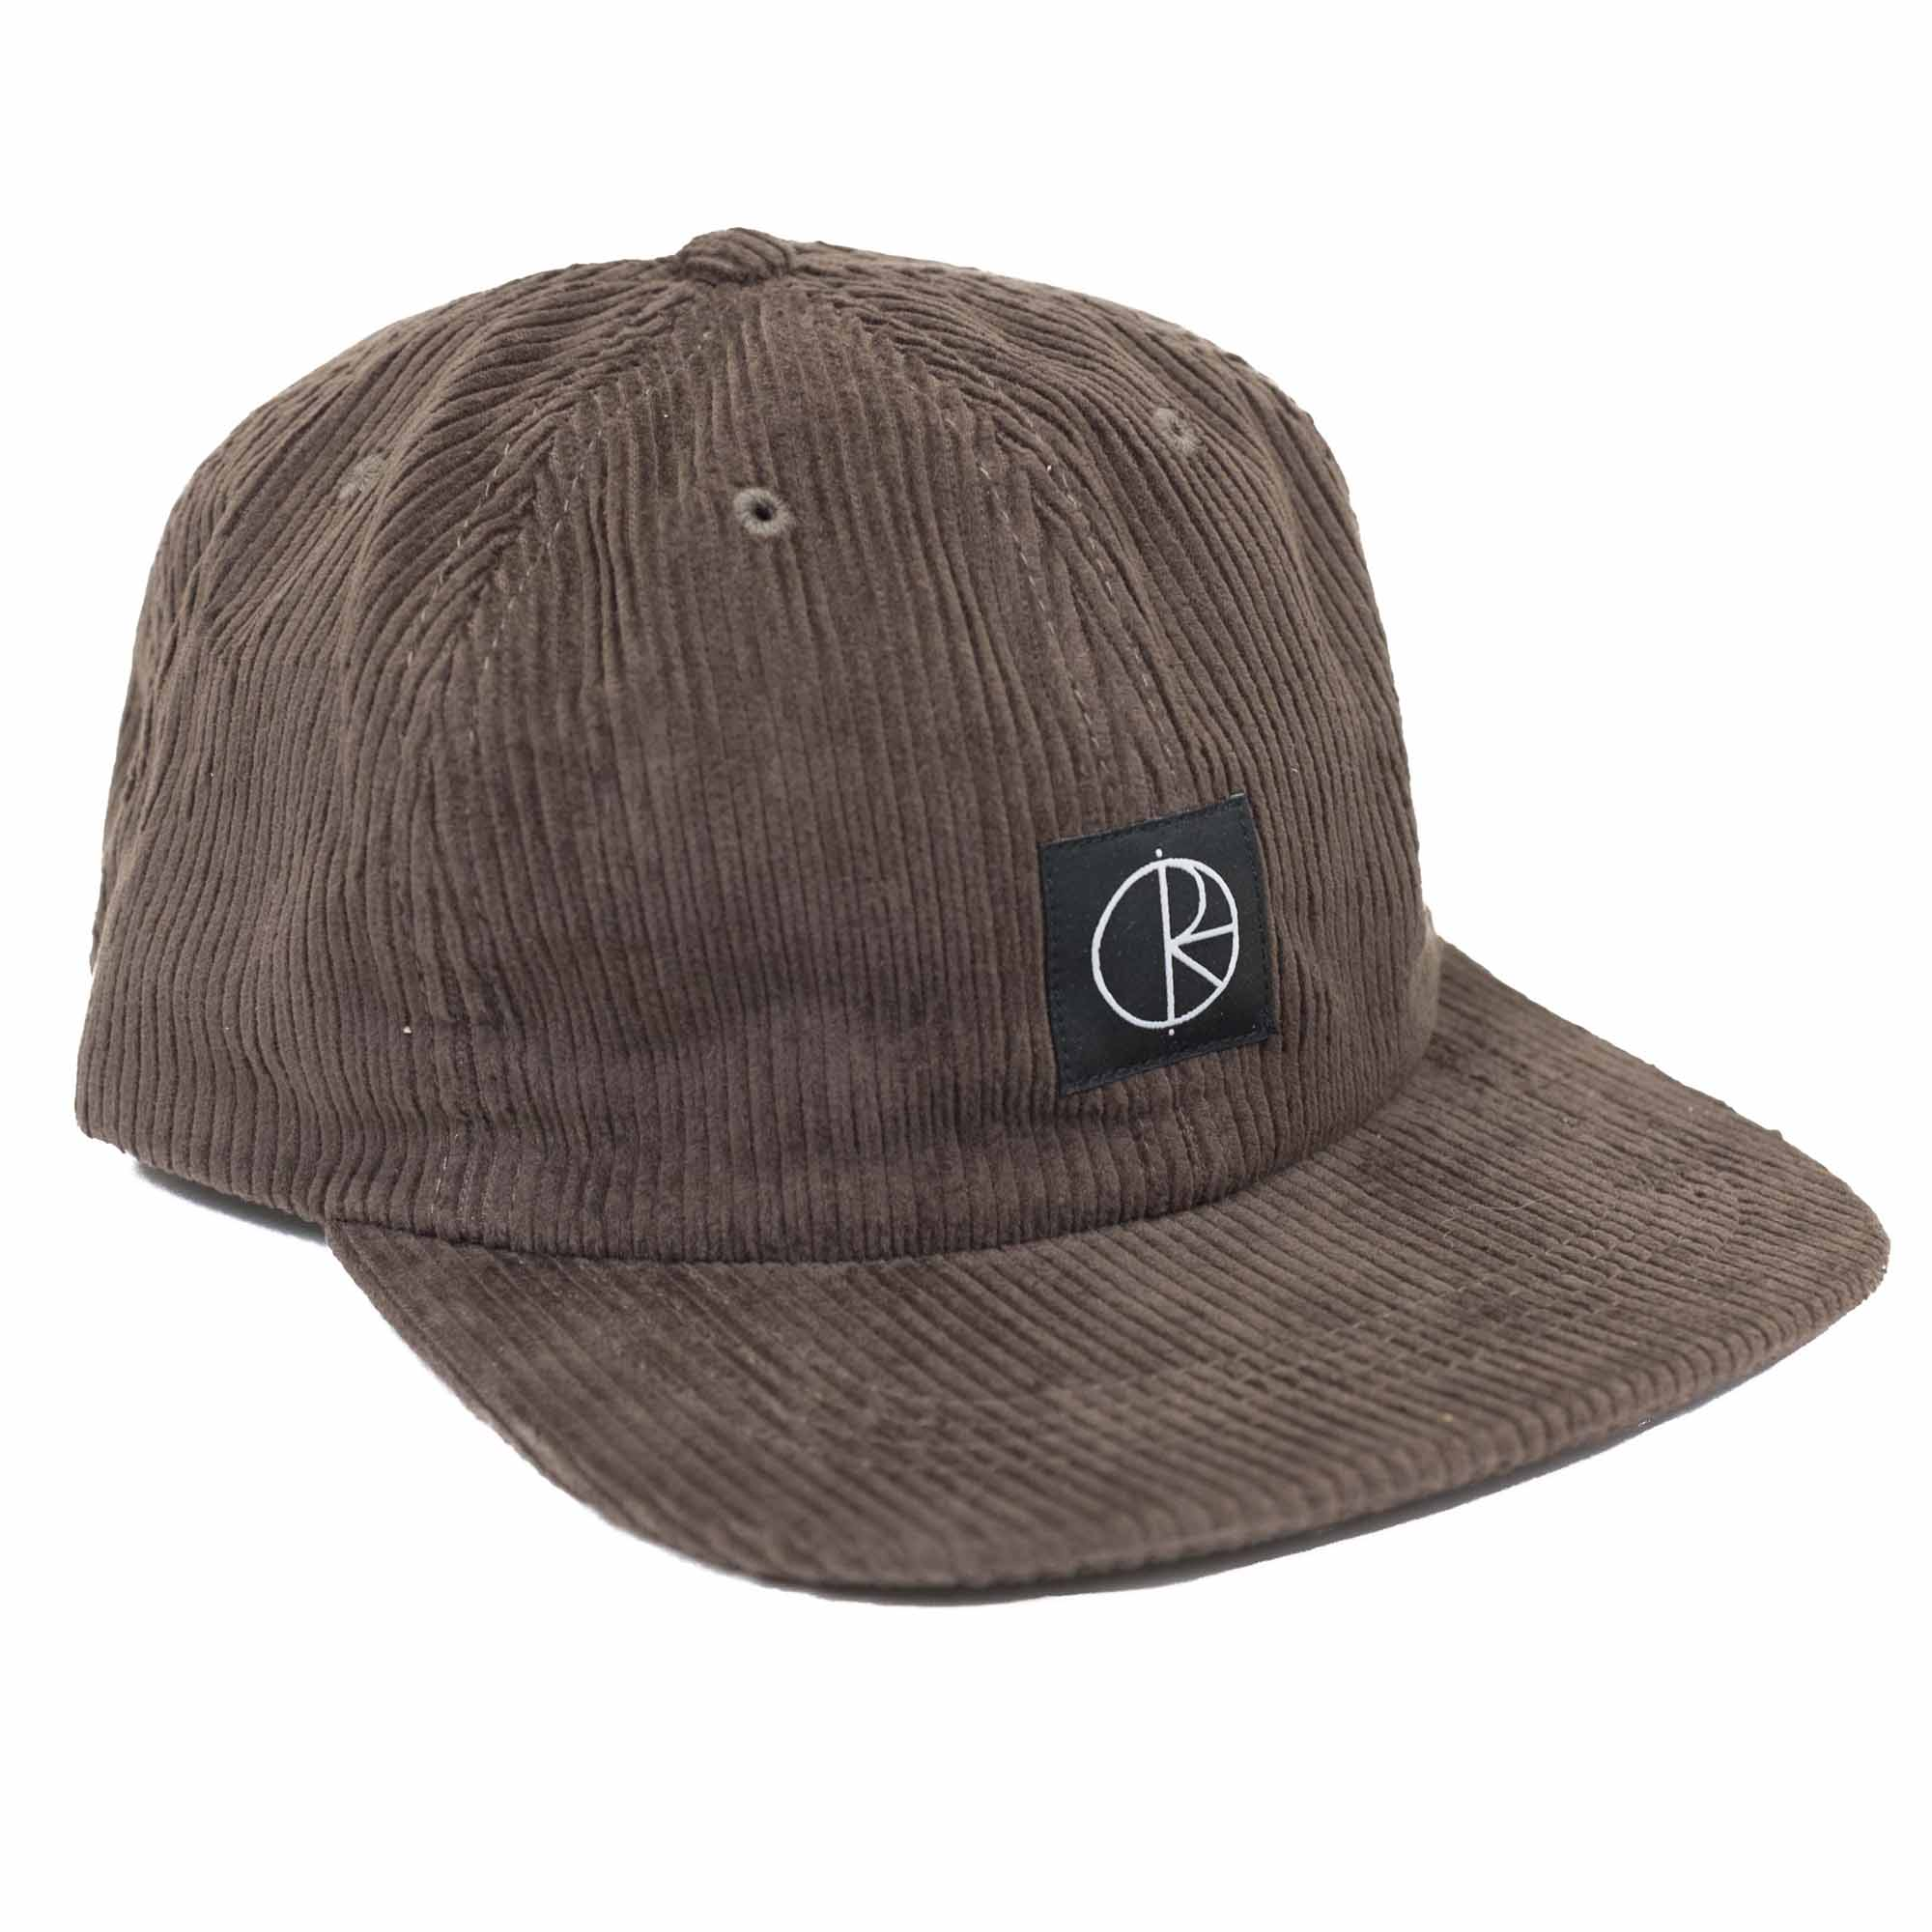 Polar Skate Co. Corduroy Cap - Brown